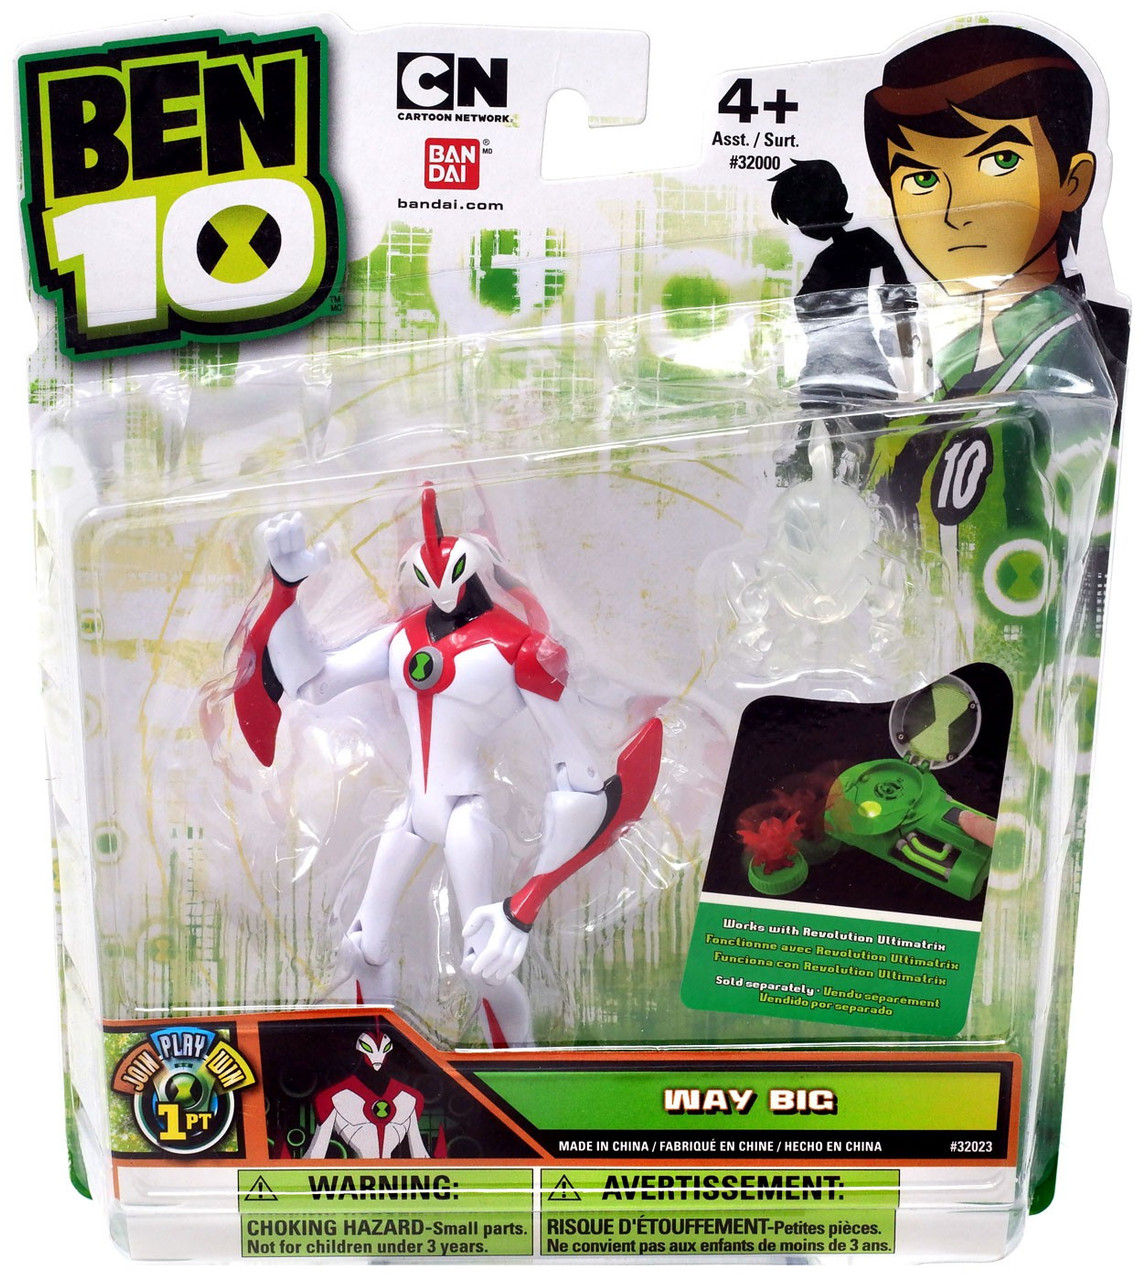 Ben 10 Ultimate Alien Way Big 4 Action Figure Bandai America Toywiz Domain name ping and traceroute information. bandai